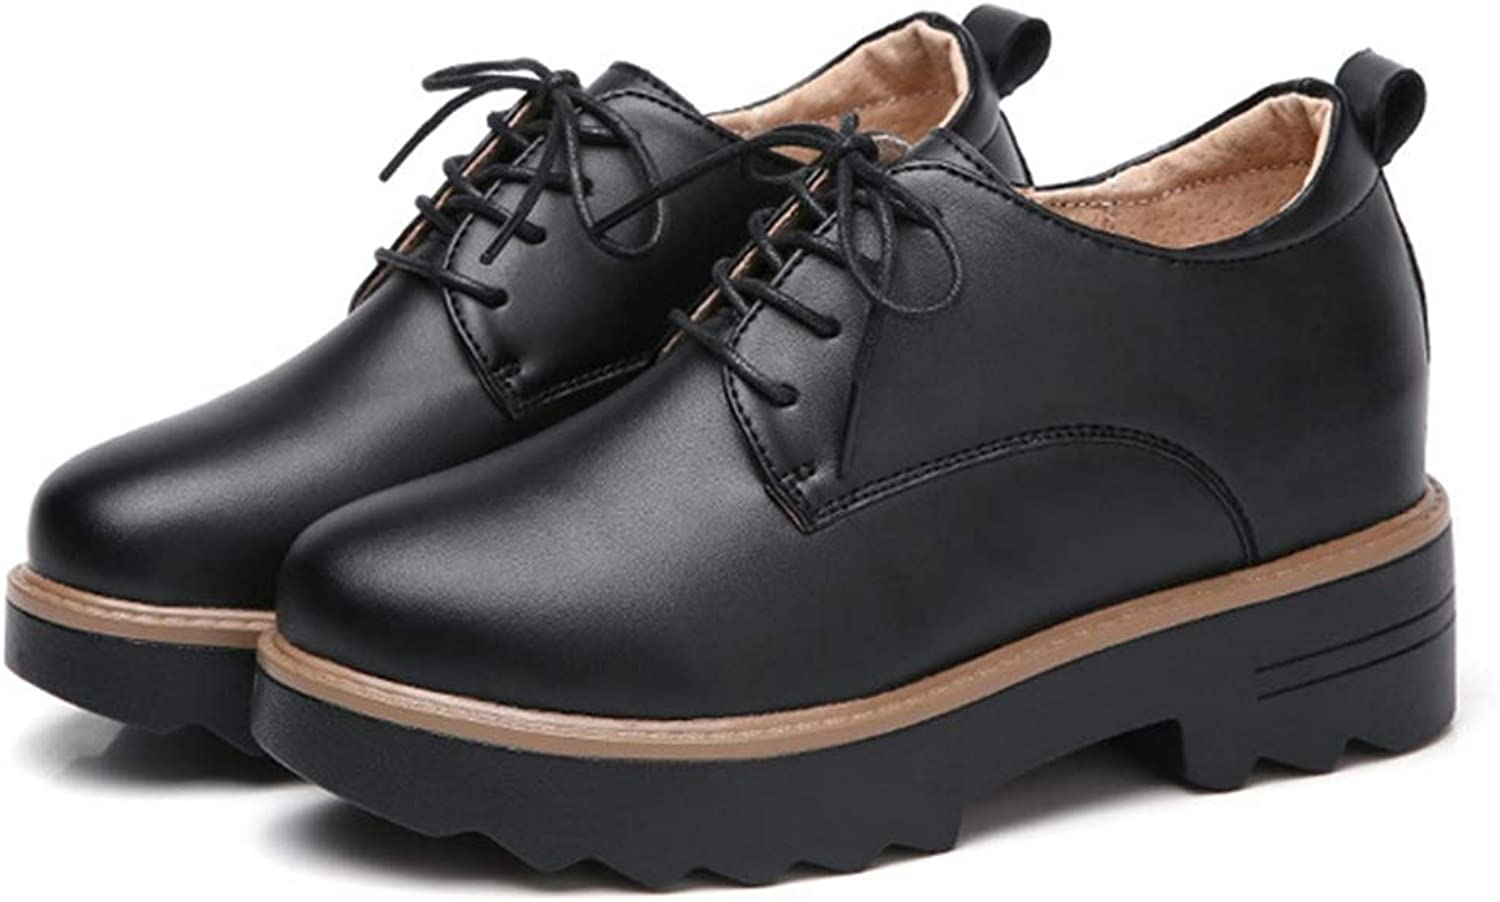 CYBLING Womens Lace Up Leather Perforated Oxfords shoes Casual Platform Wingtip Brogue Sneakers